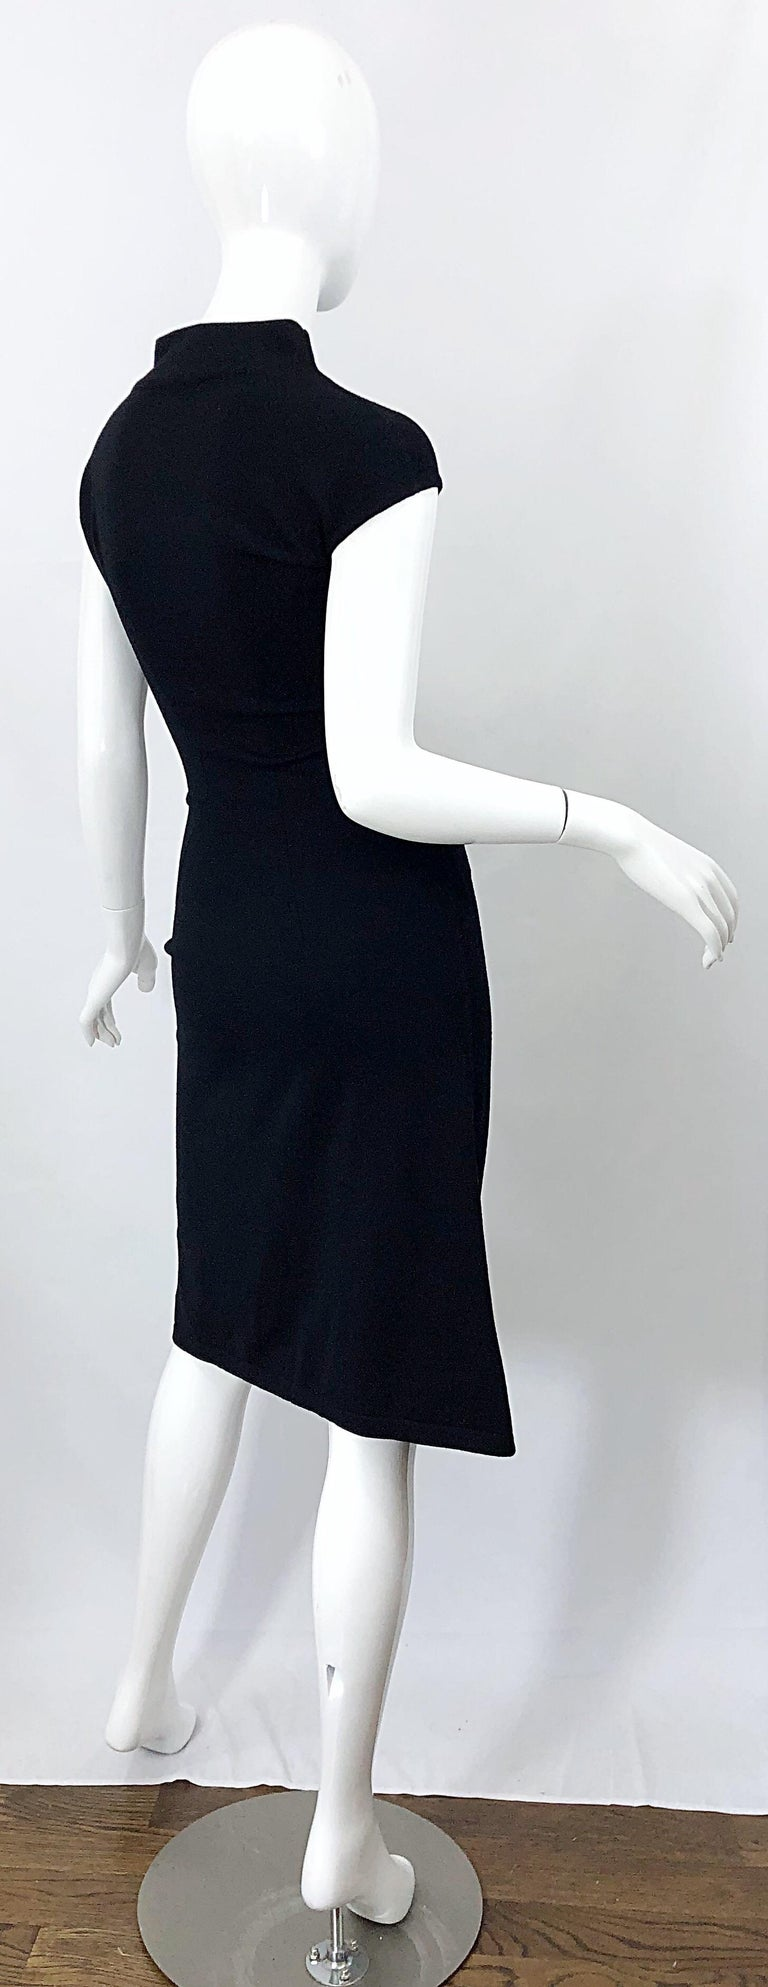 Vintage Azzedine Alaia 1980s Black Lightweight Wool Cap Sleeve Bodycon 80s Dress For Sale 11